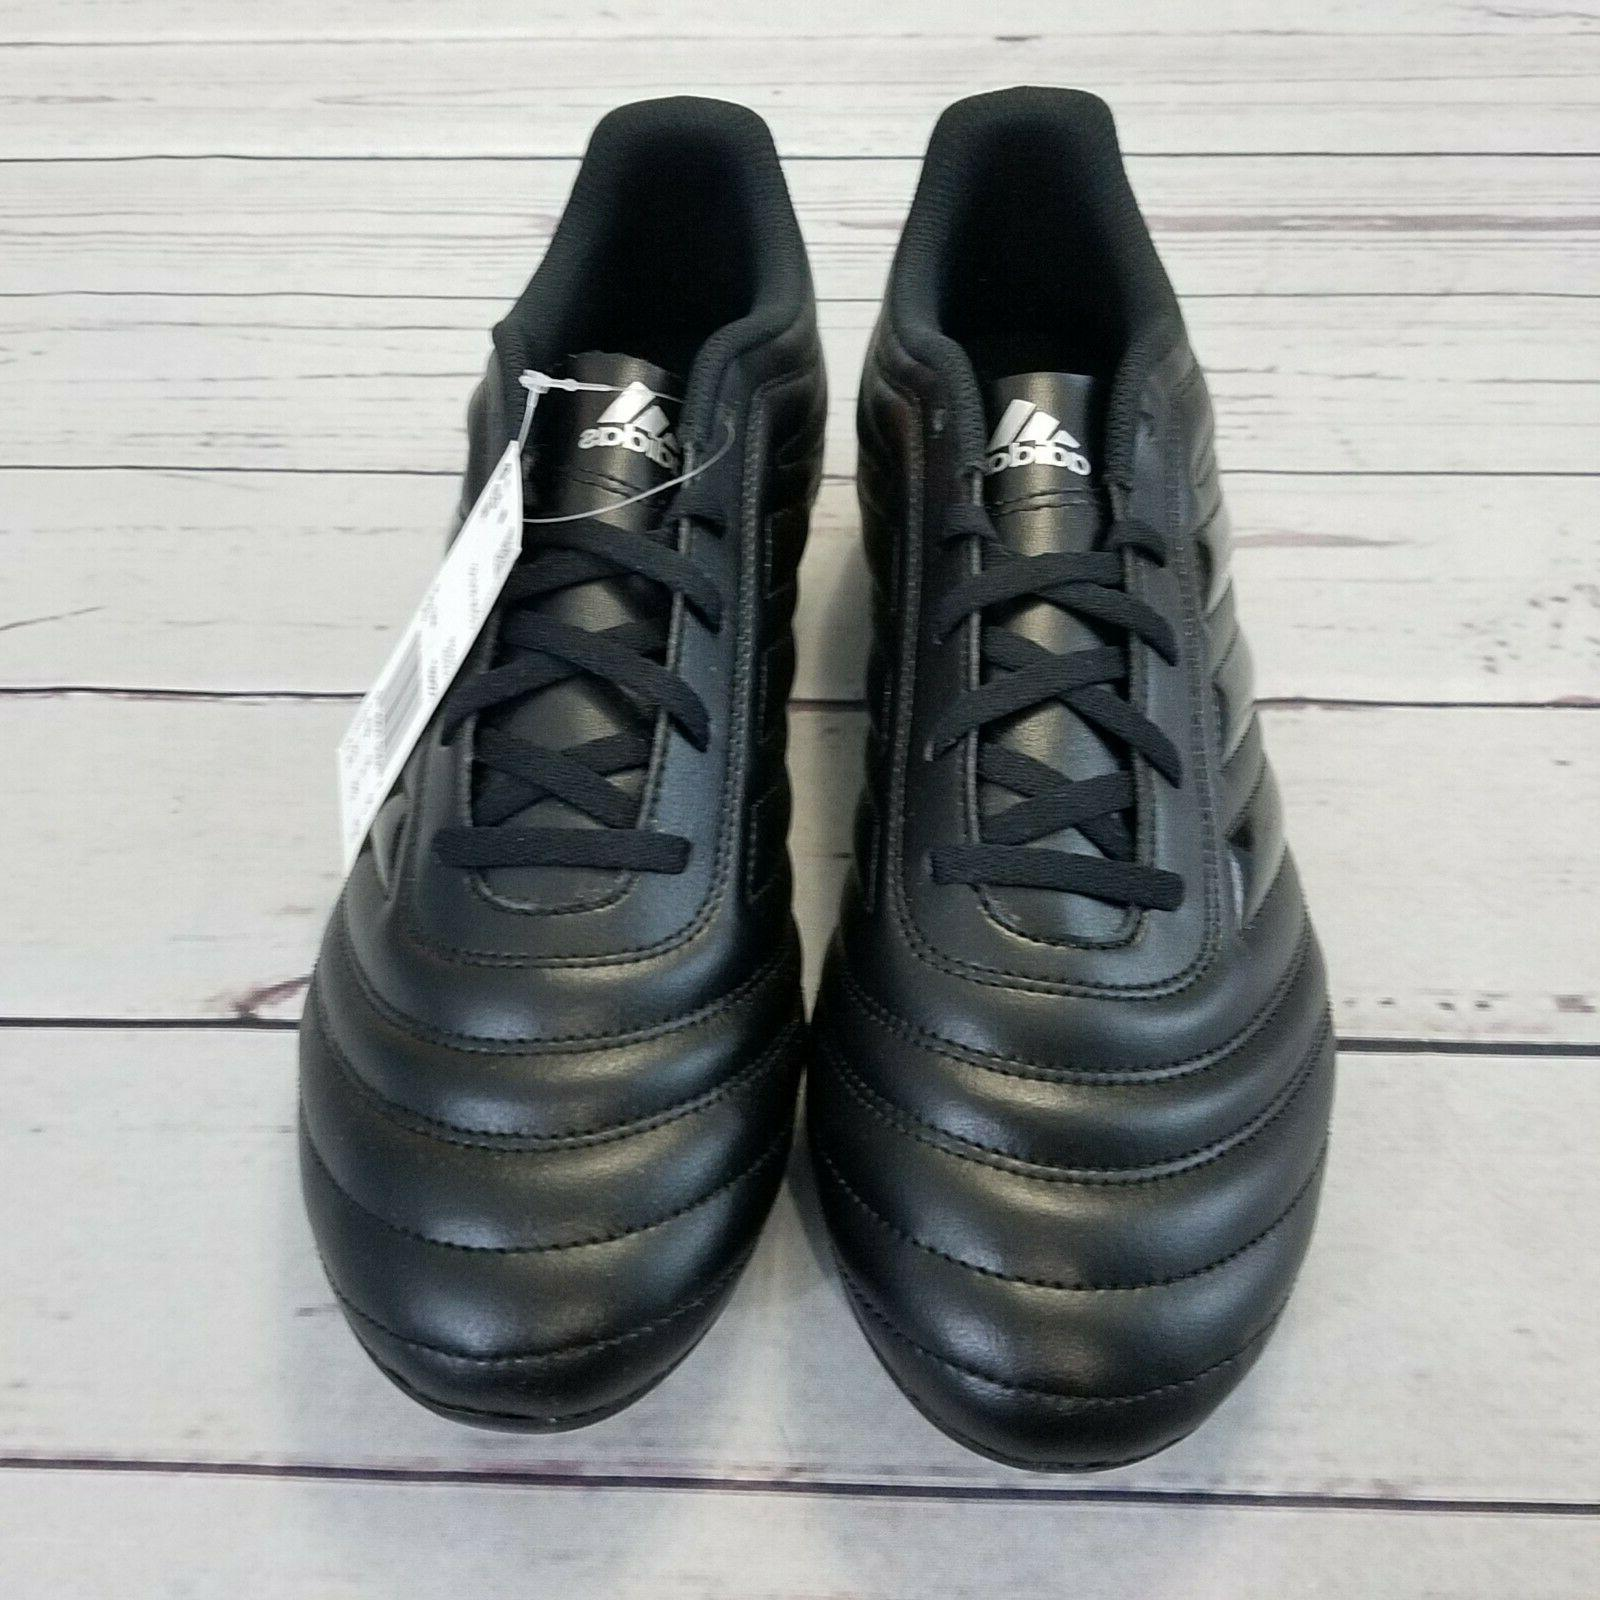 Adidas 19.4 Firm Ground Cleats Size 10.5